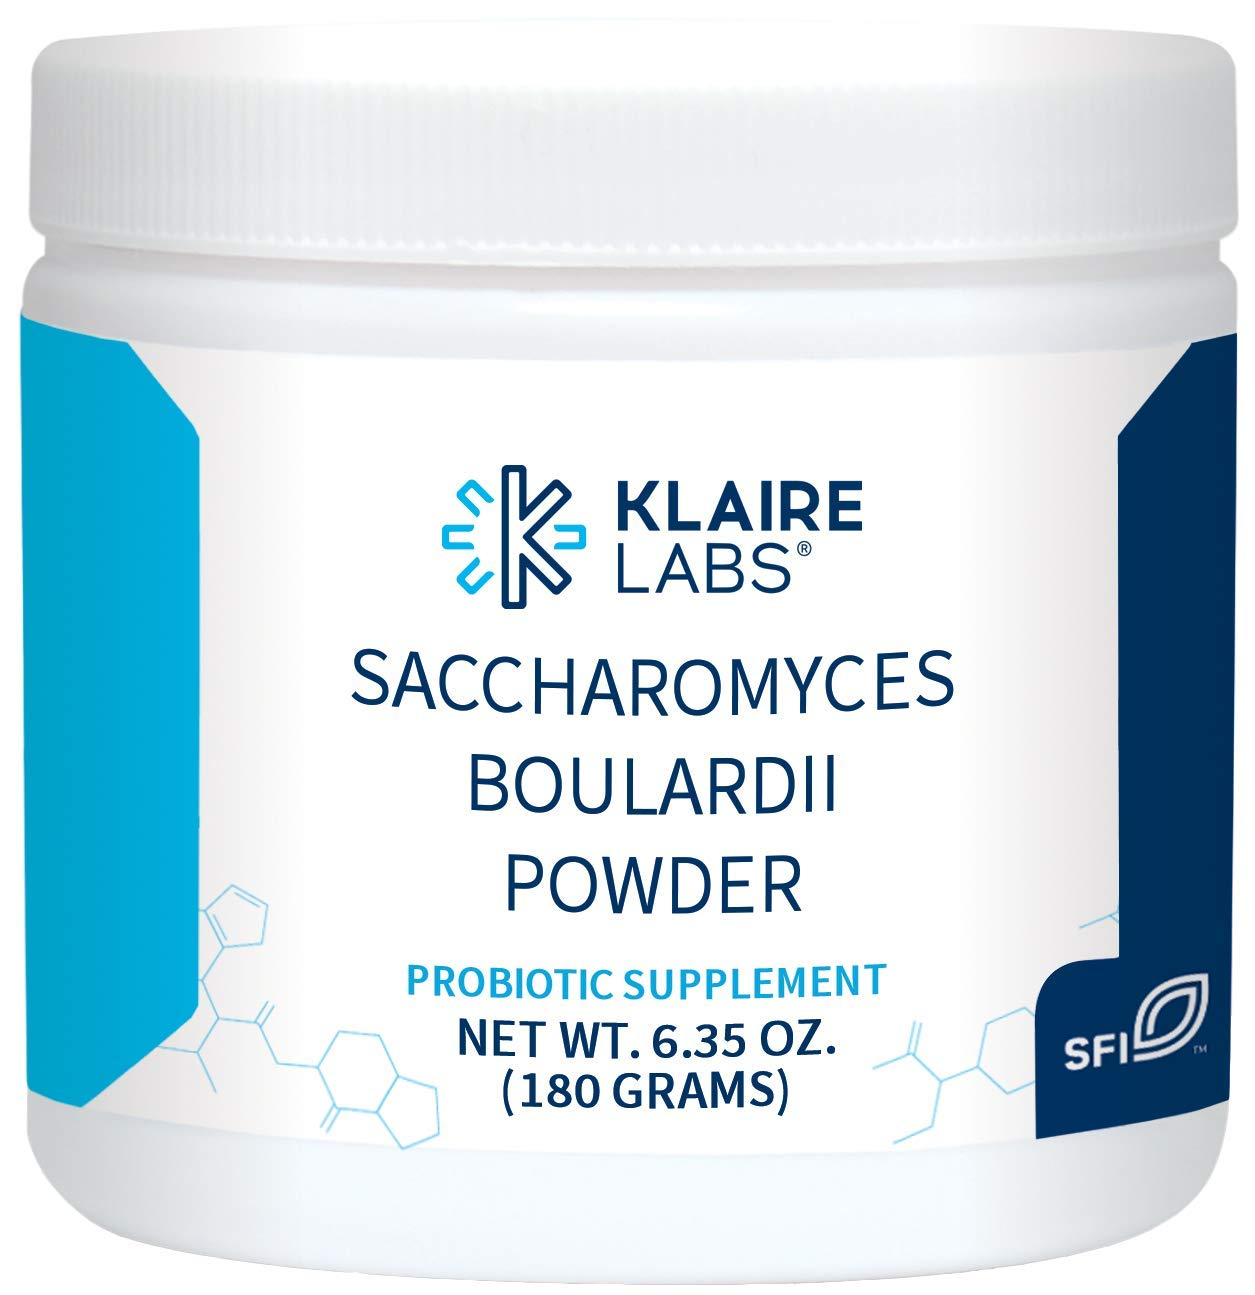 Klaire Labs Pure Saccharomyces boulardii Powder - 9 Billion CFU Powerful Shelf-Stable Yeast Probiotic for Kids, Men & Women, Hypoallergenic & Non-Dairy (180 G / 300 Servings)